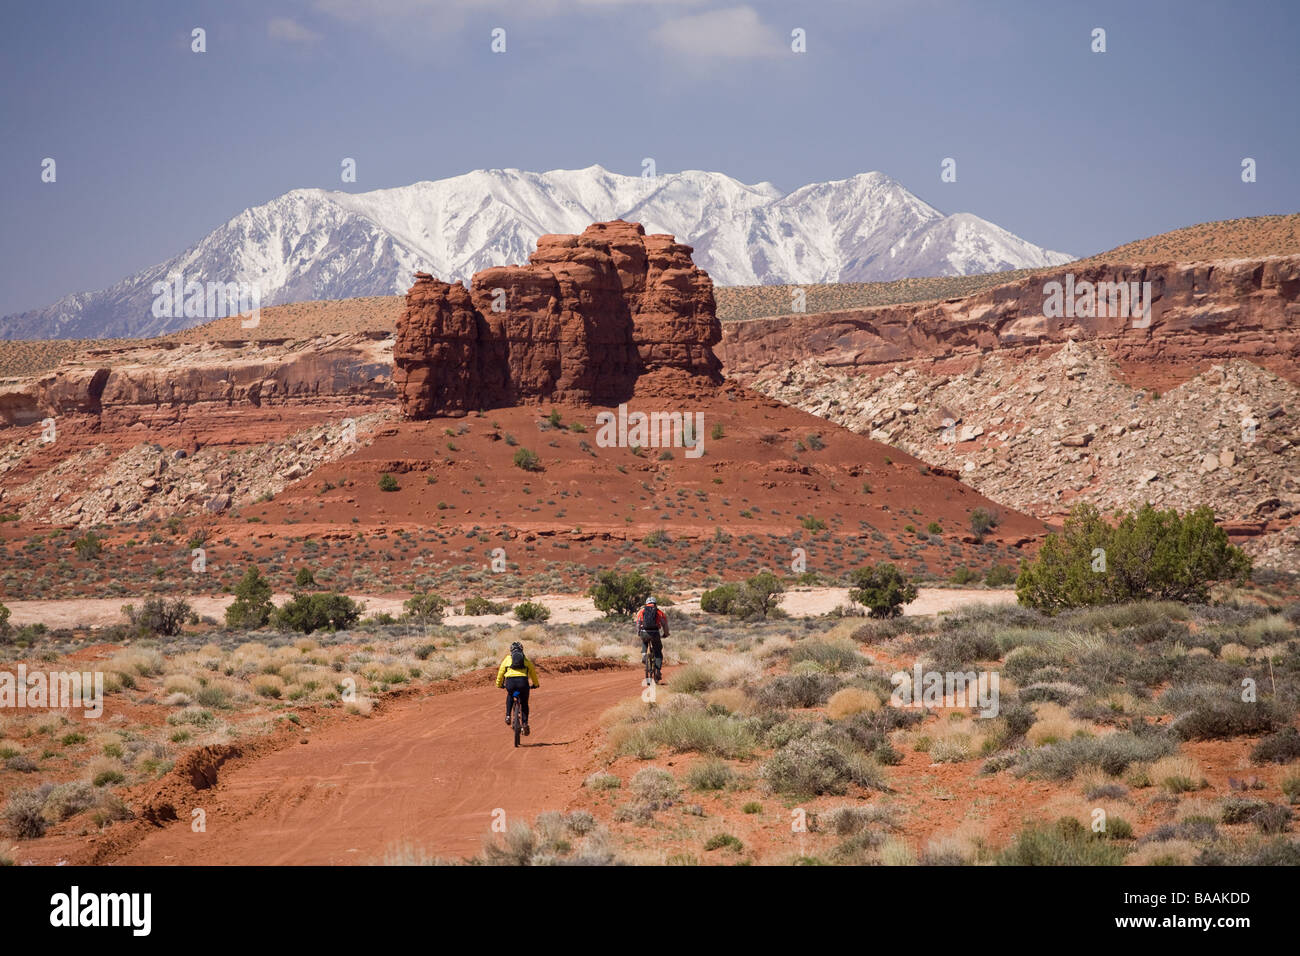 Mountain bikers on dirt road with desert scenery and snowy mountain in background near Hite, Utah. - Stock Image